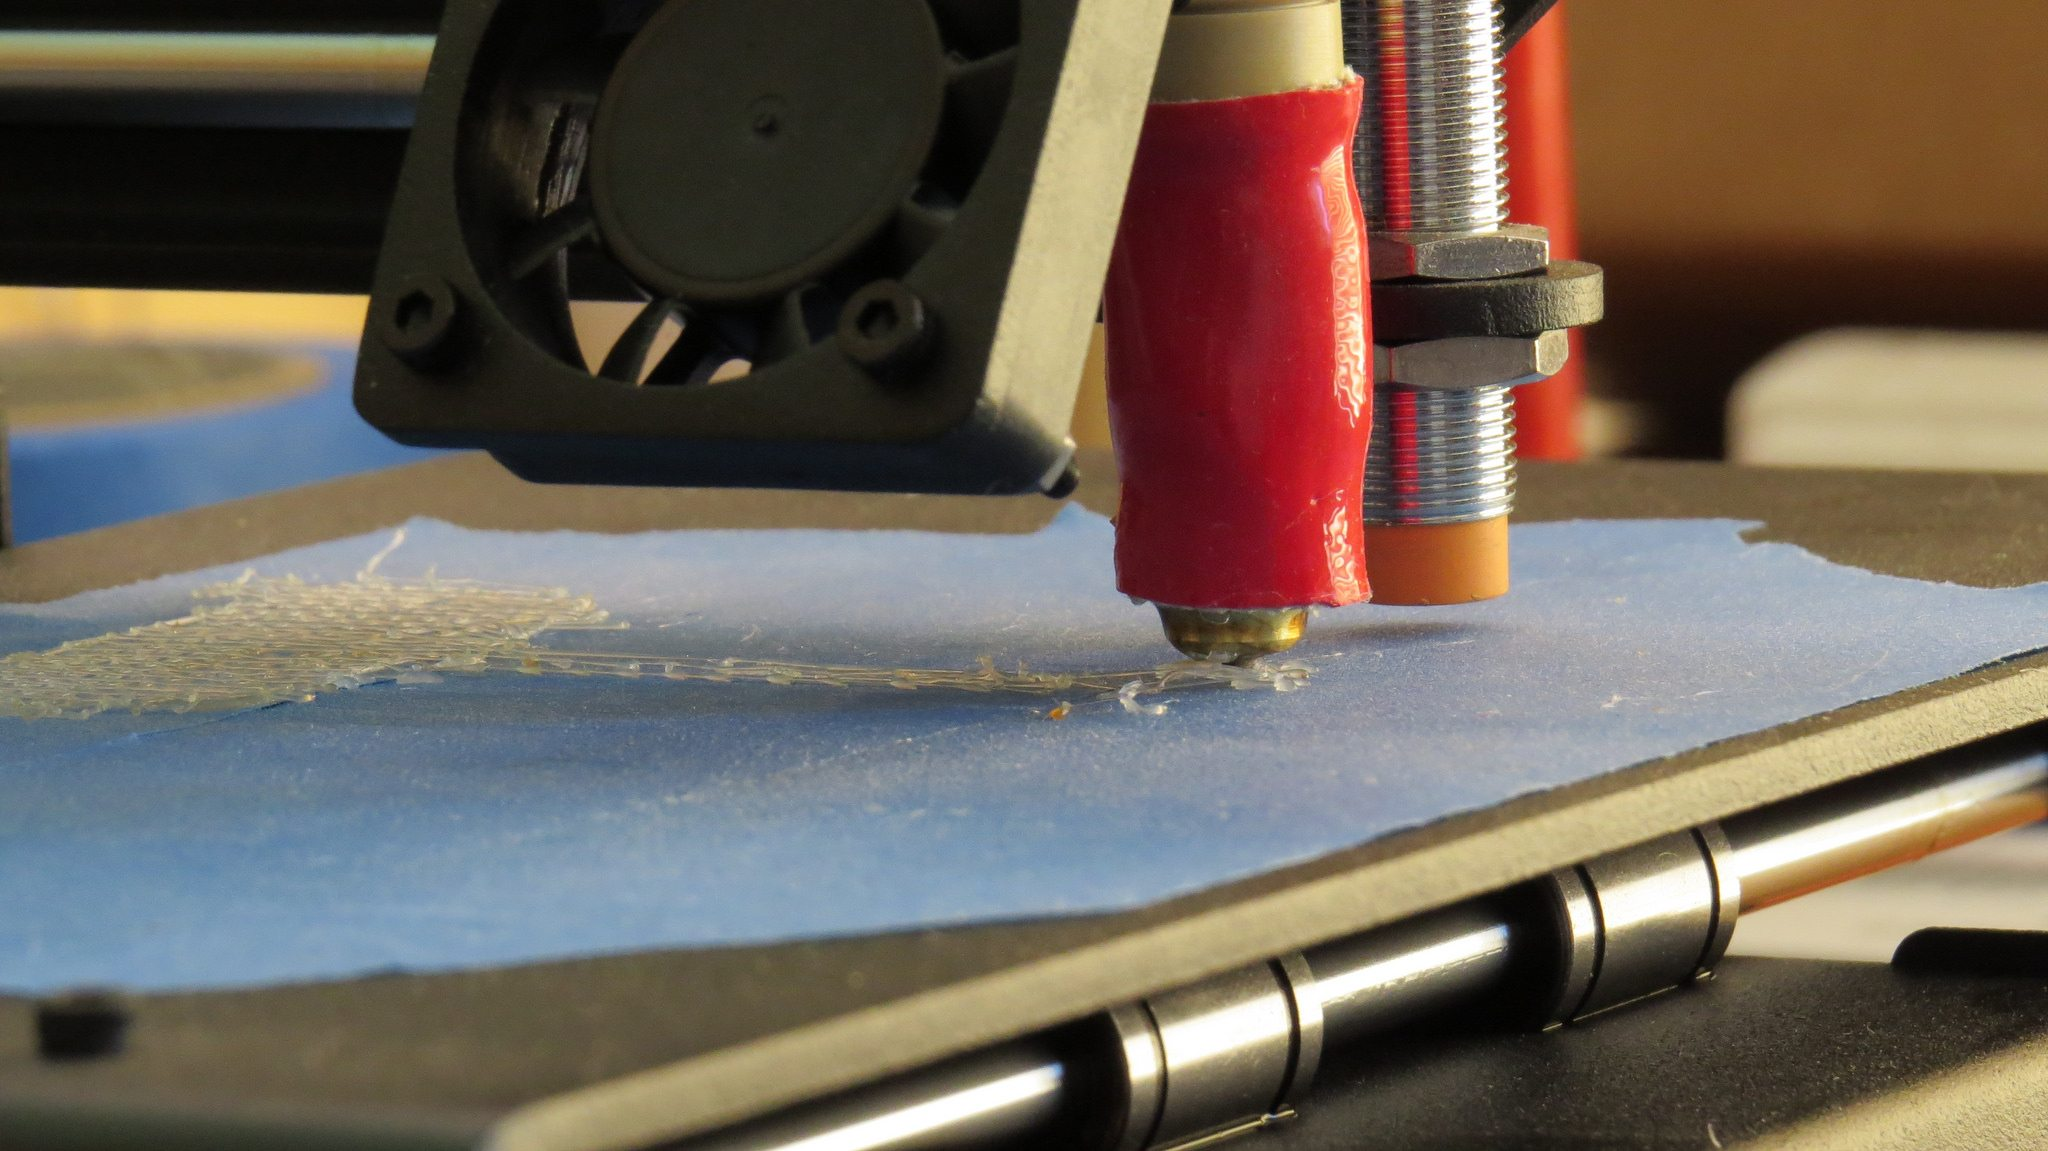 Personalized 3D Printed Gift Lures New Customers